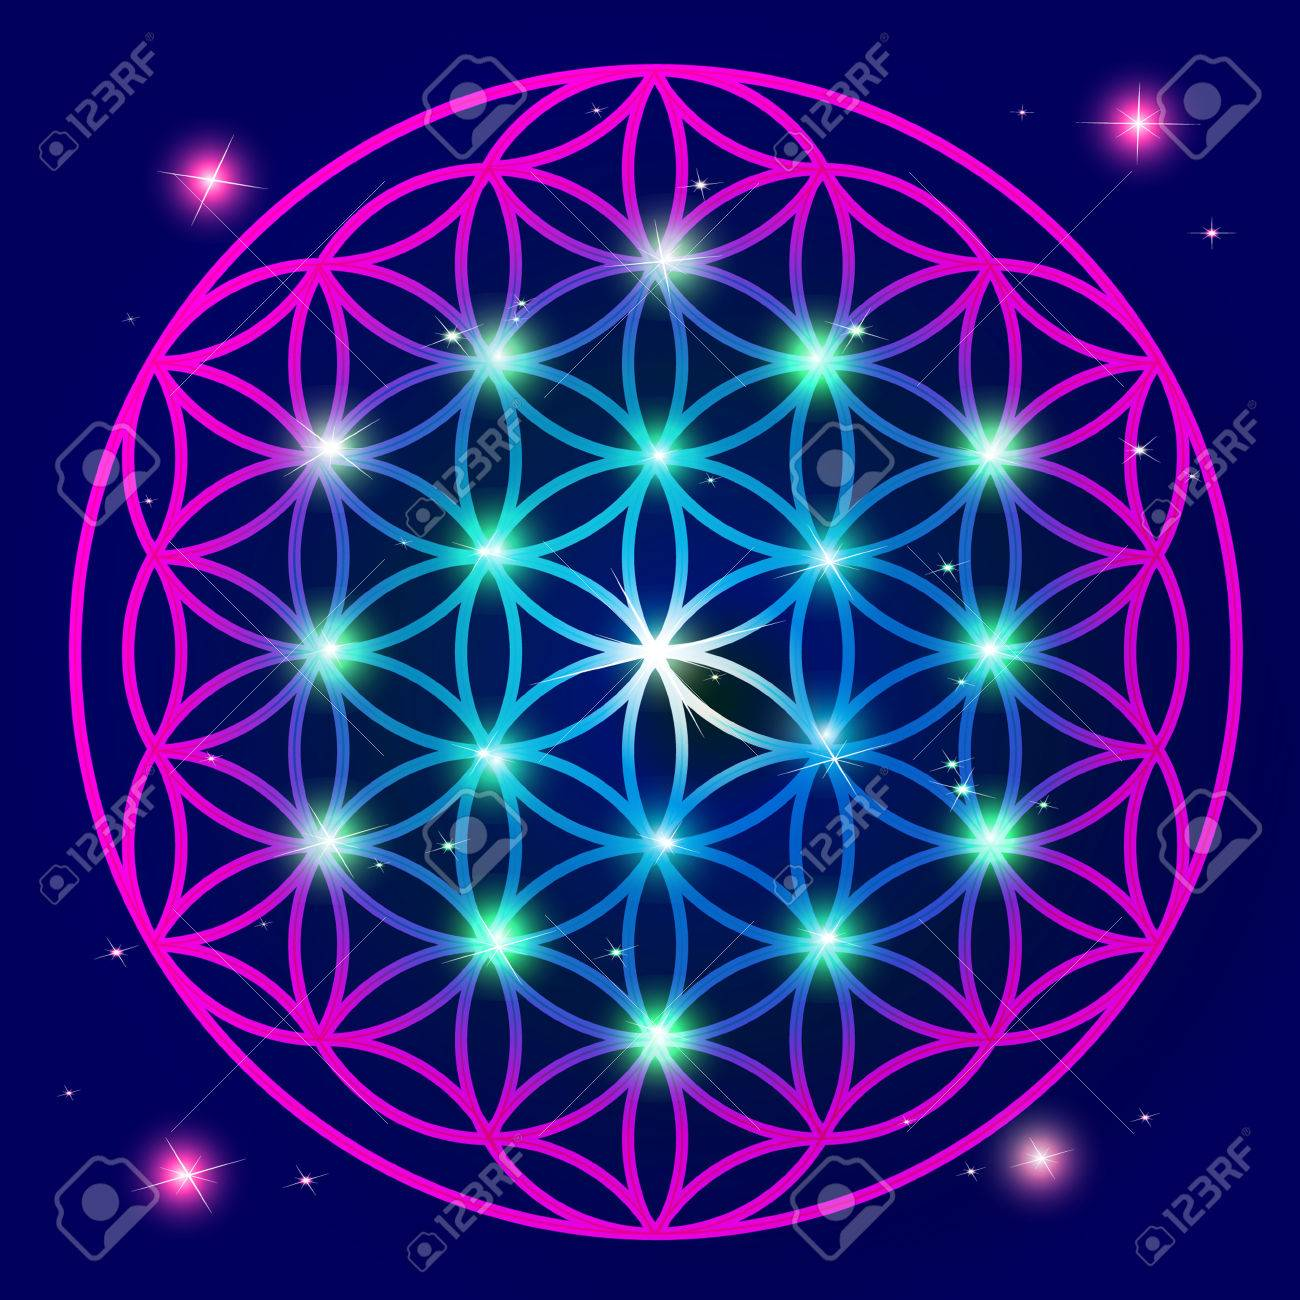 Flower Of Life Mandala ornament Banque d'images - 56300815